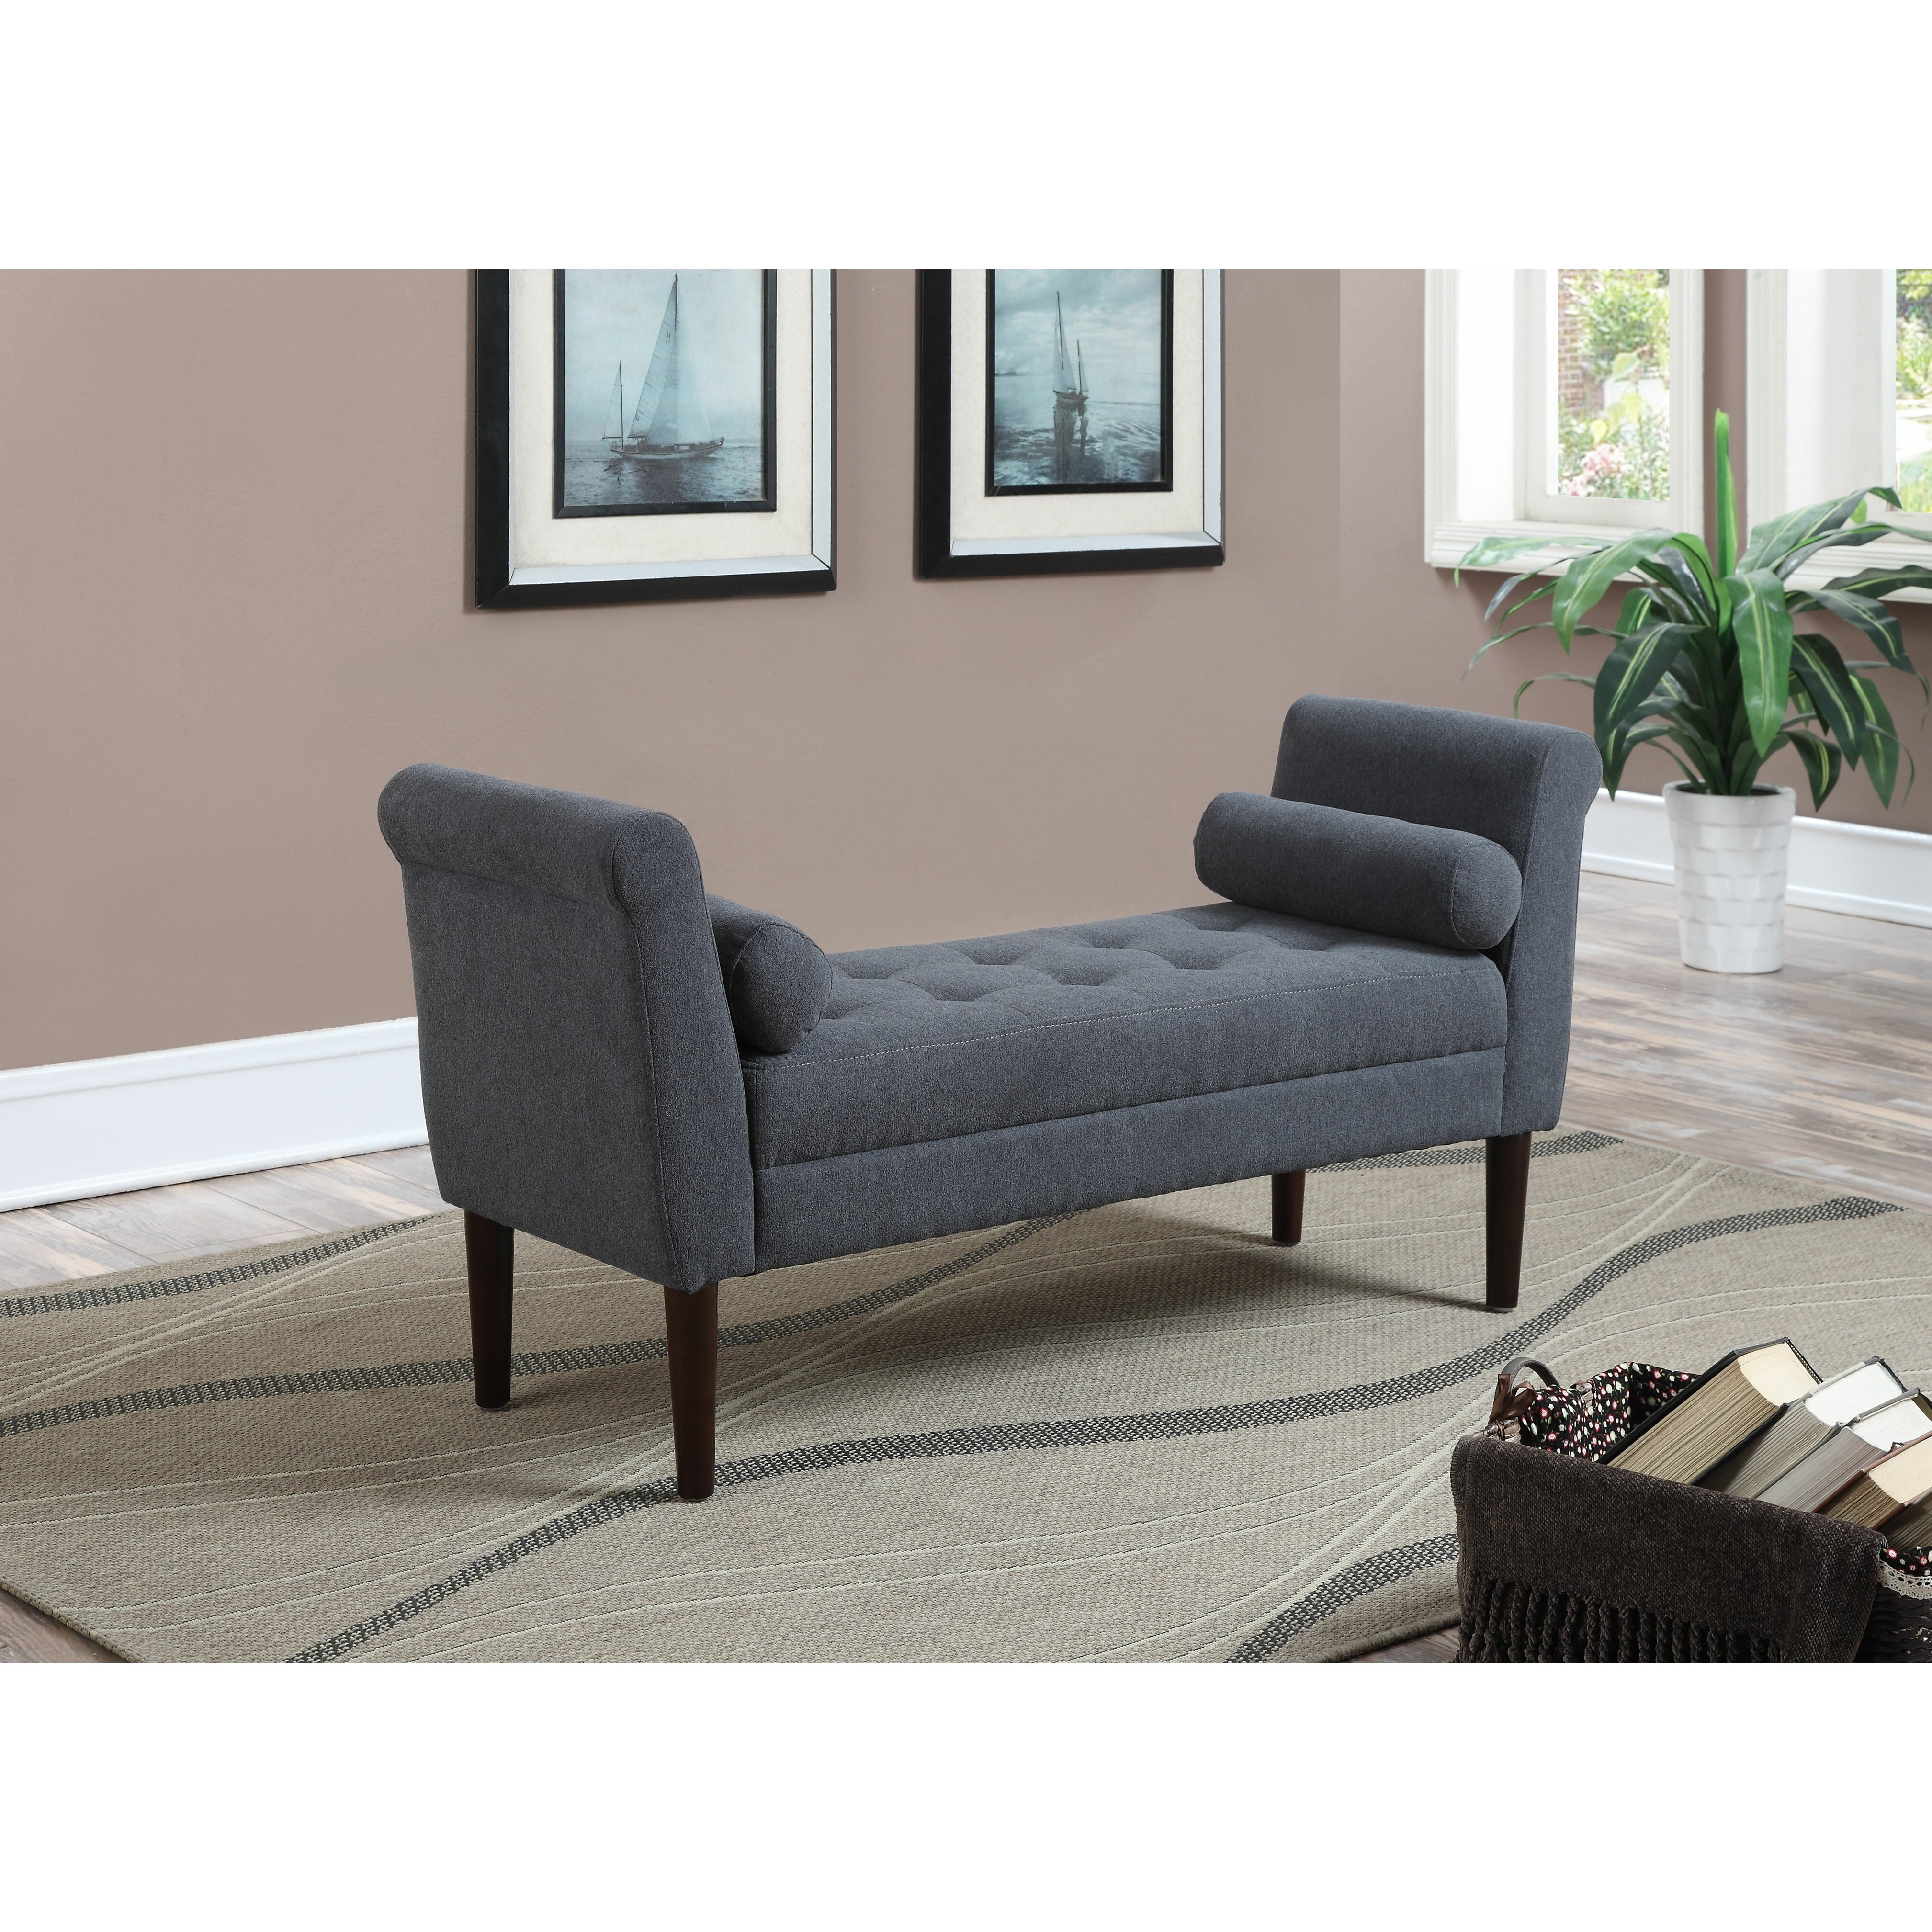 Upholstered Bedroom Bench: AC Pacific Betty Upholstered Bedroom Bench & Reviews